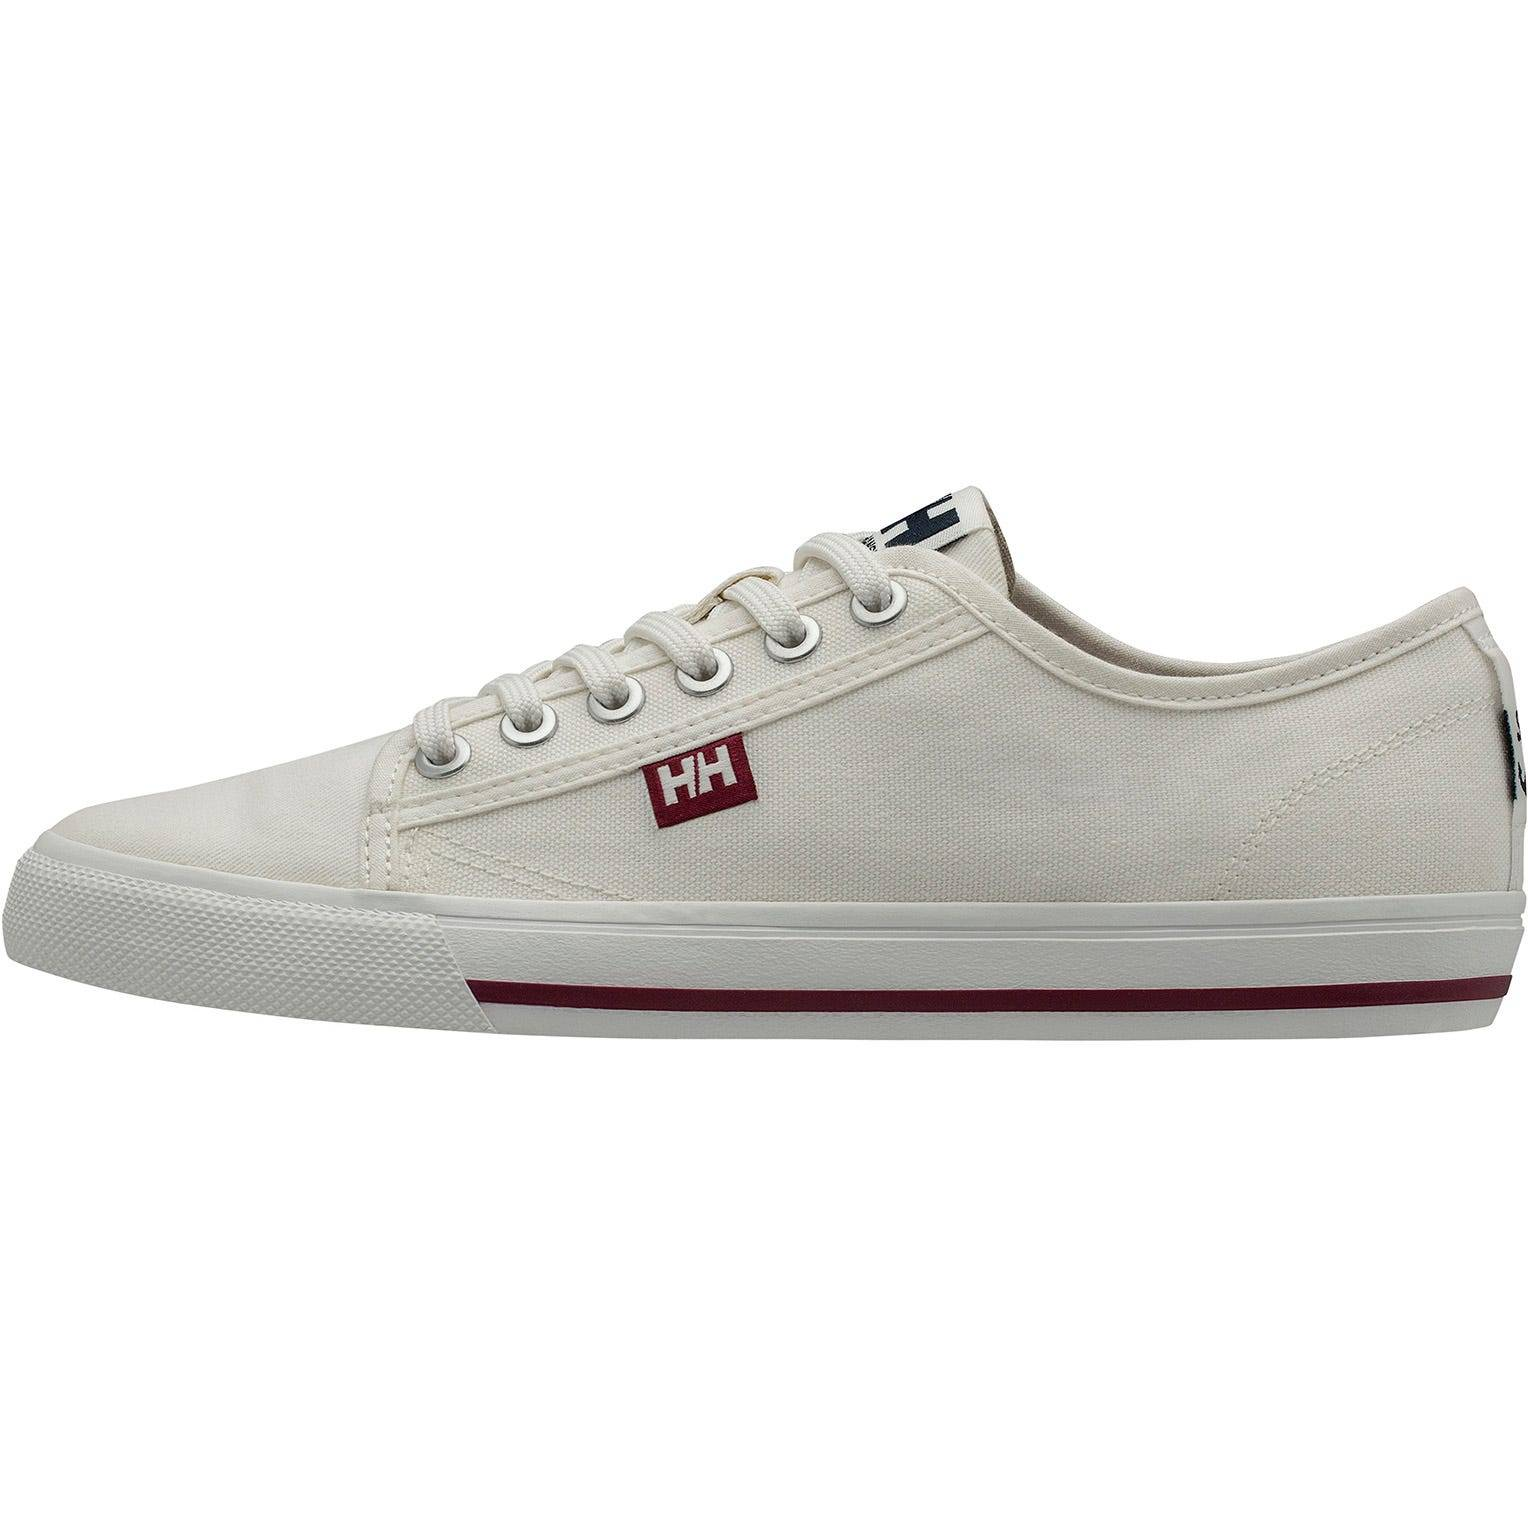 Helly Hansen W Fjord Canvas Shoe V2 Womens Casual White 40/8.5